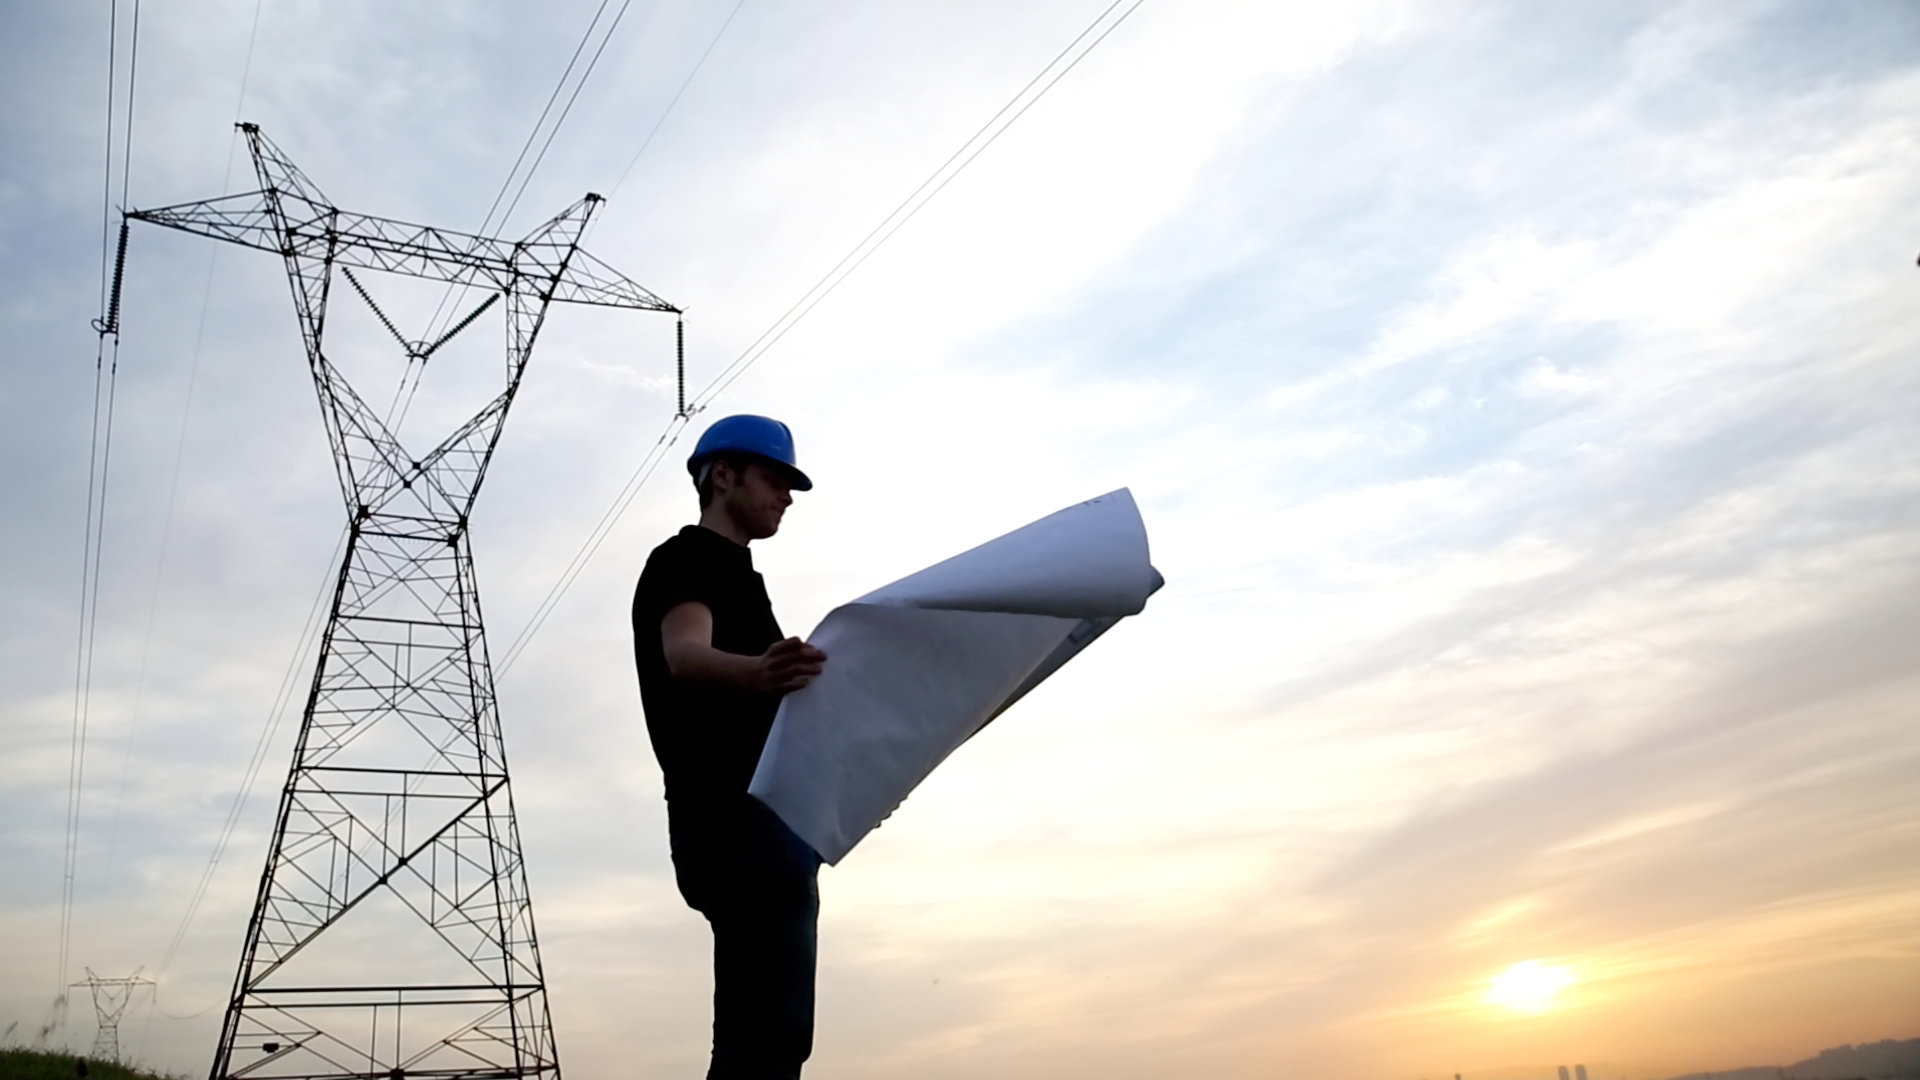 engineer holding blueprints under the power lines.